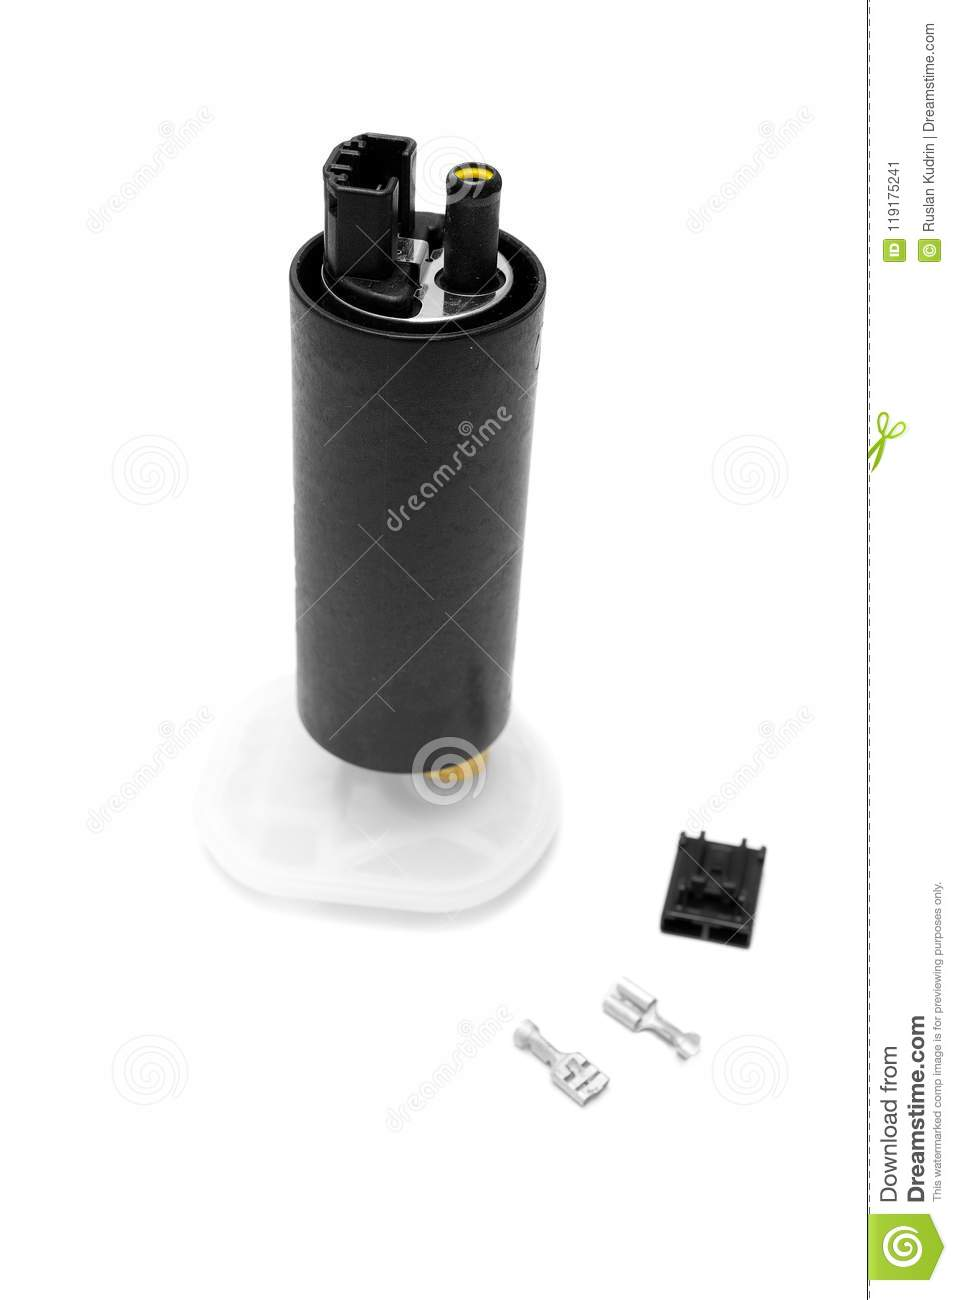 Fuel filter and pump. Isolate